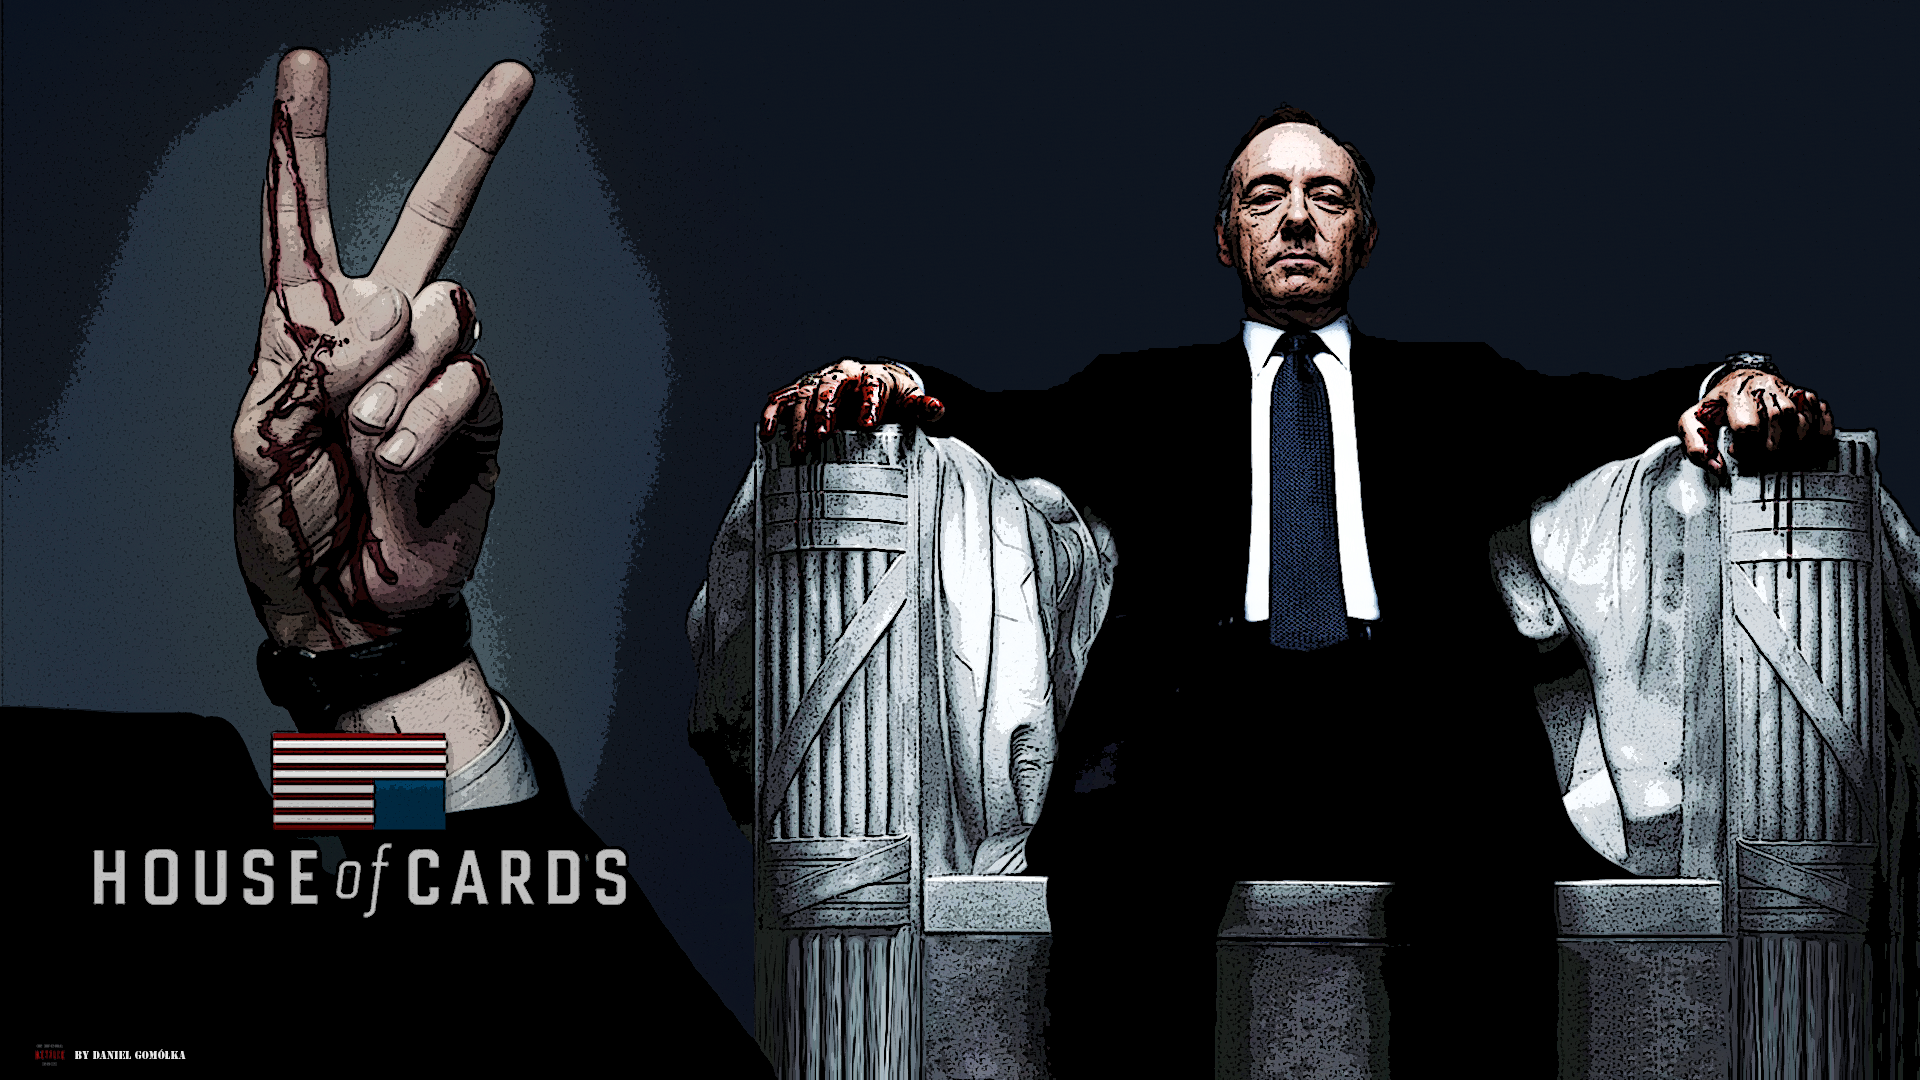 Free Download House Of Cards Hd Wallpapers For Desktop Download